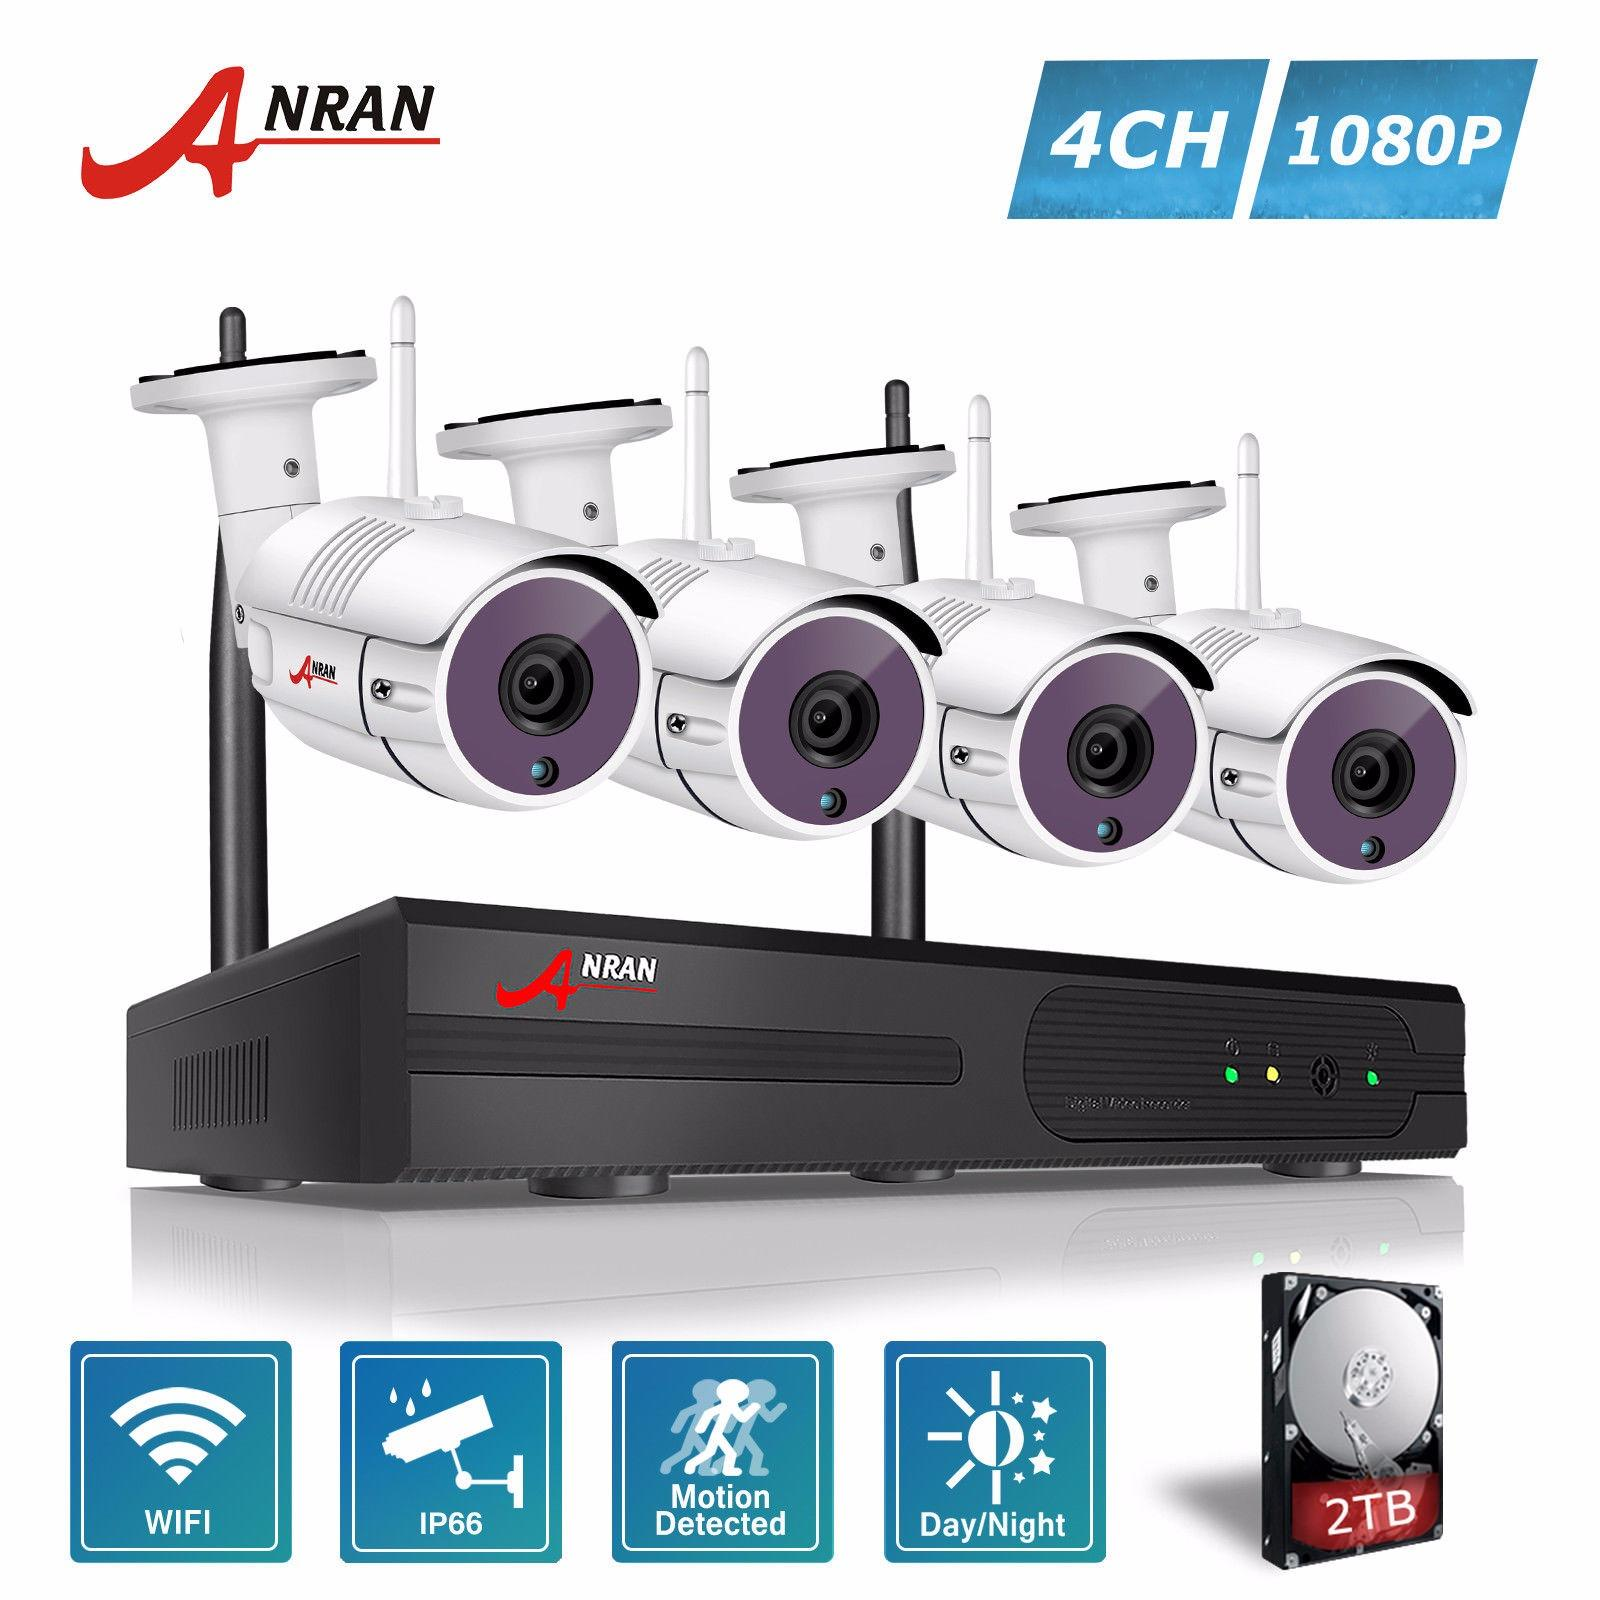 Anran 4Ch Wireless Nvr Cctv Kit P2P 1080P Hd Outdoor Wifi Mini Ip Camera 36Ir Security Surveillance System Anran Diskon 40